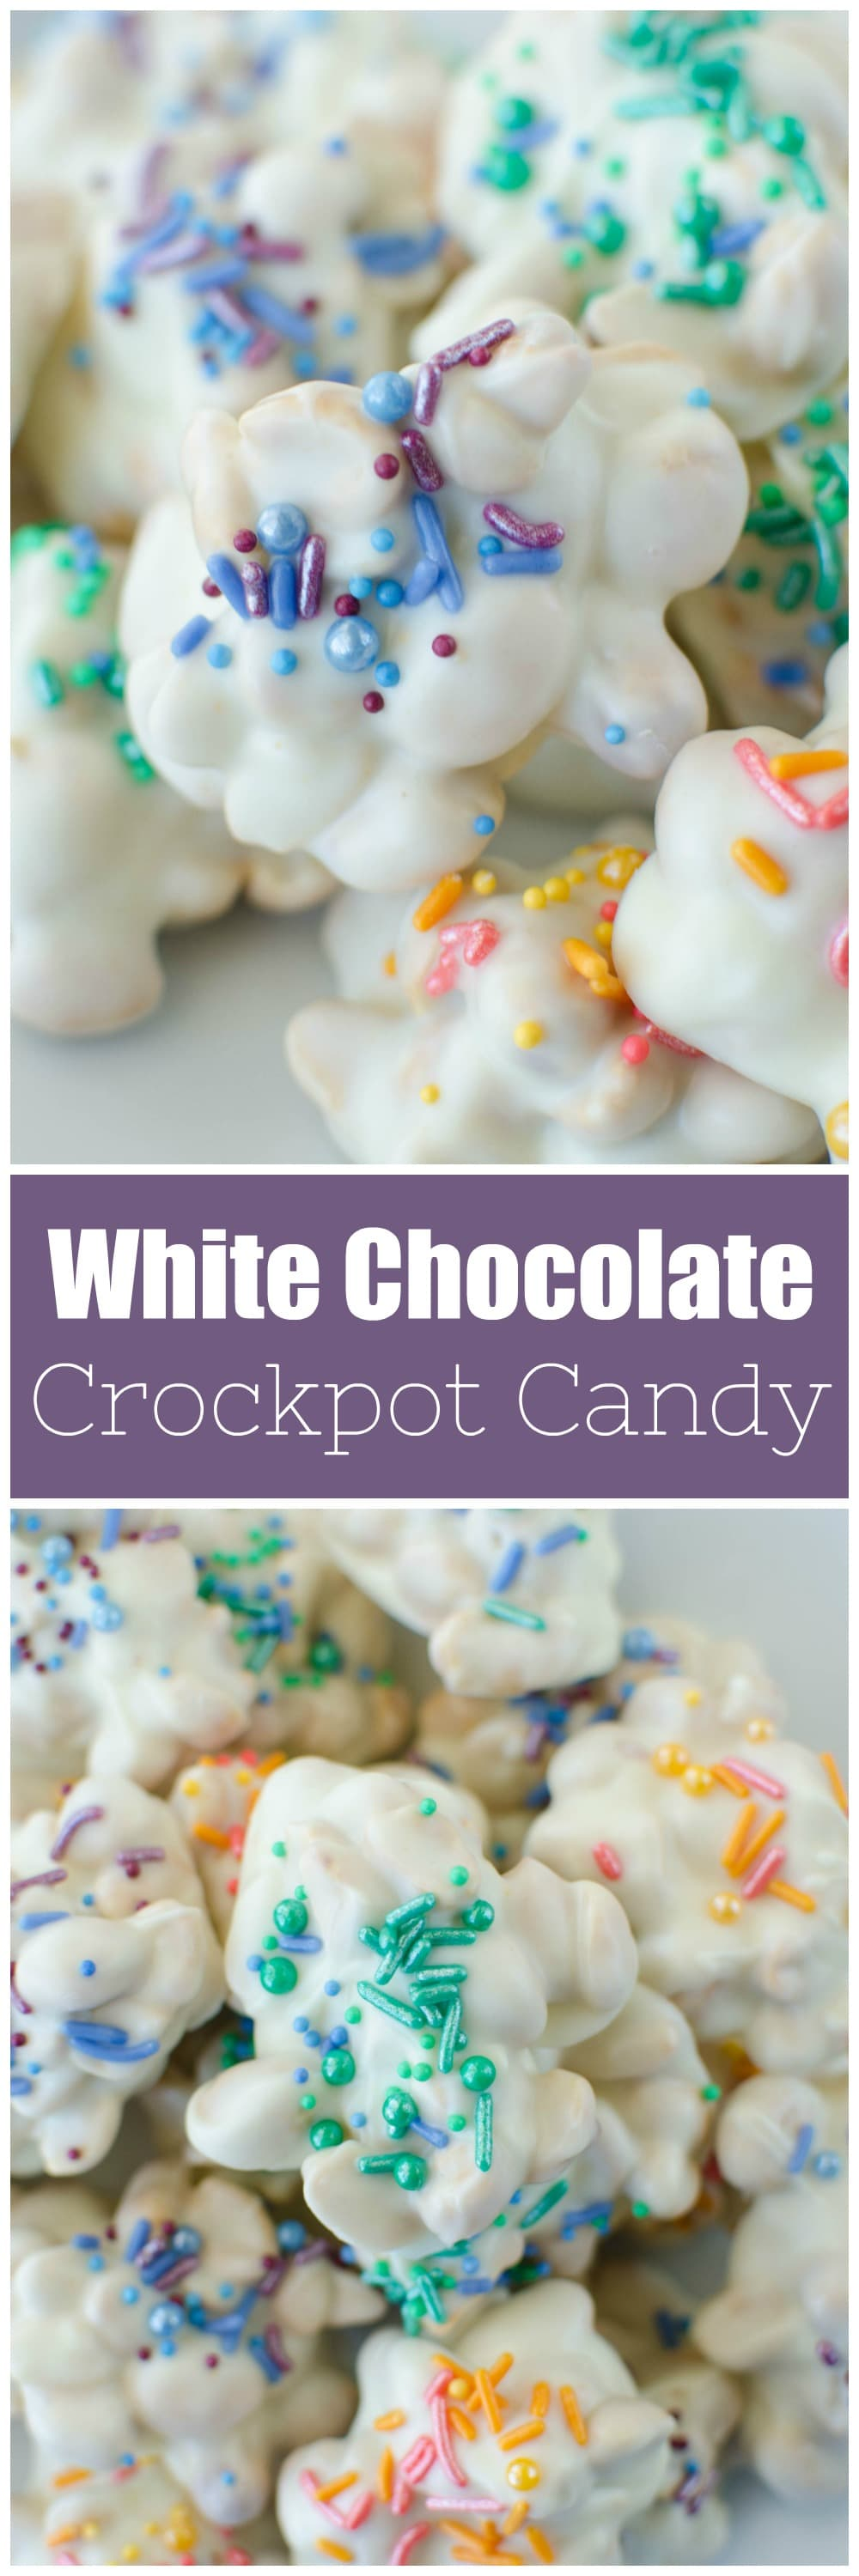 White Chocolate Crockpot Candy - easy 4 ingredient white chocolate peanut clusters! Made completely in the slow cooker. Perfect for holidays!